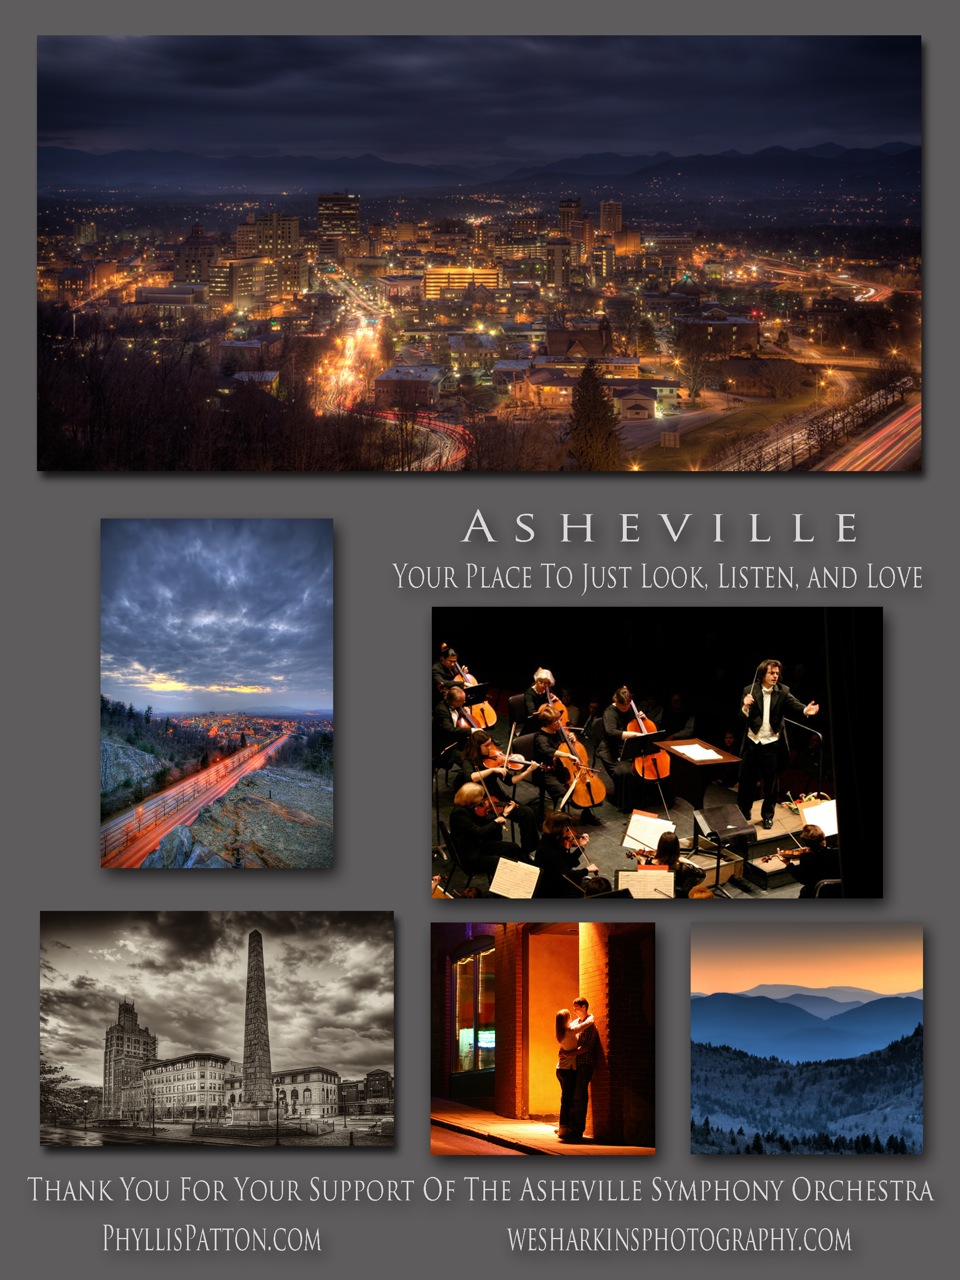 Phyllis Patton and Wes Harkins Photography sponsor the Asheville Symphony Orchestra